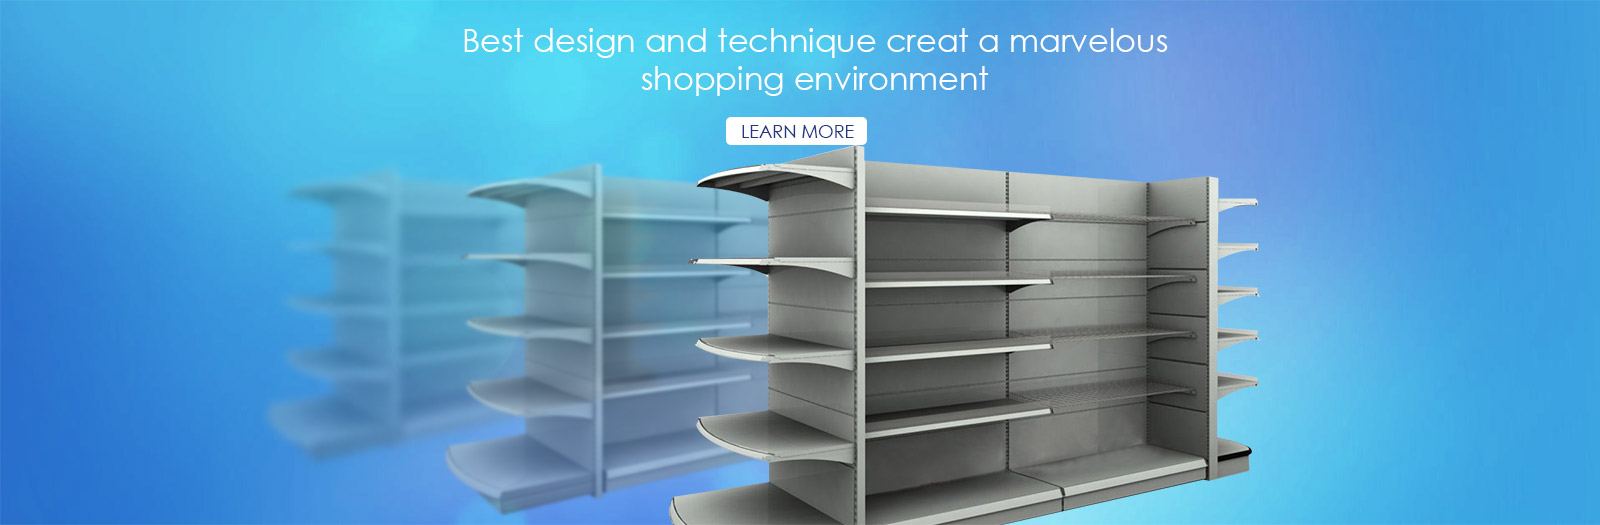 BEst design and technique creat a marvelous shopping environment